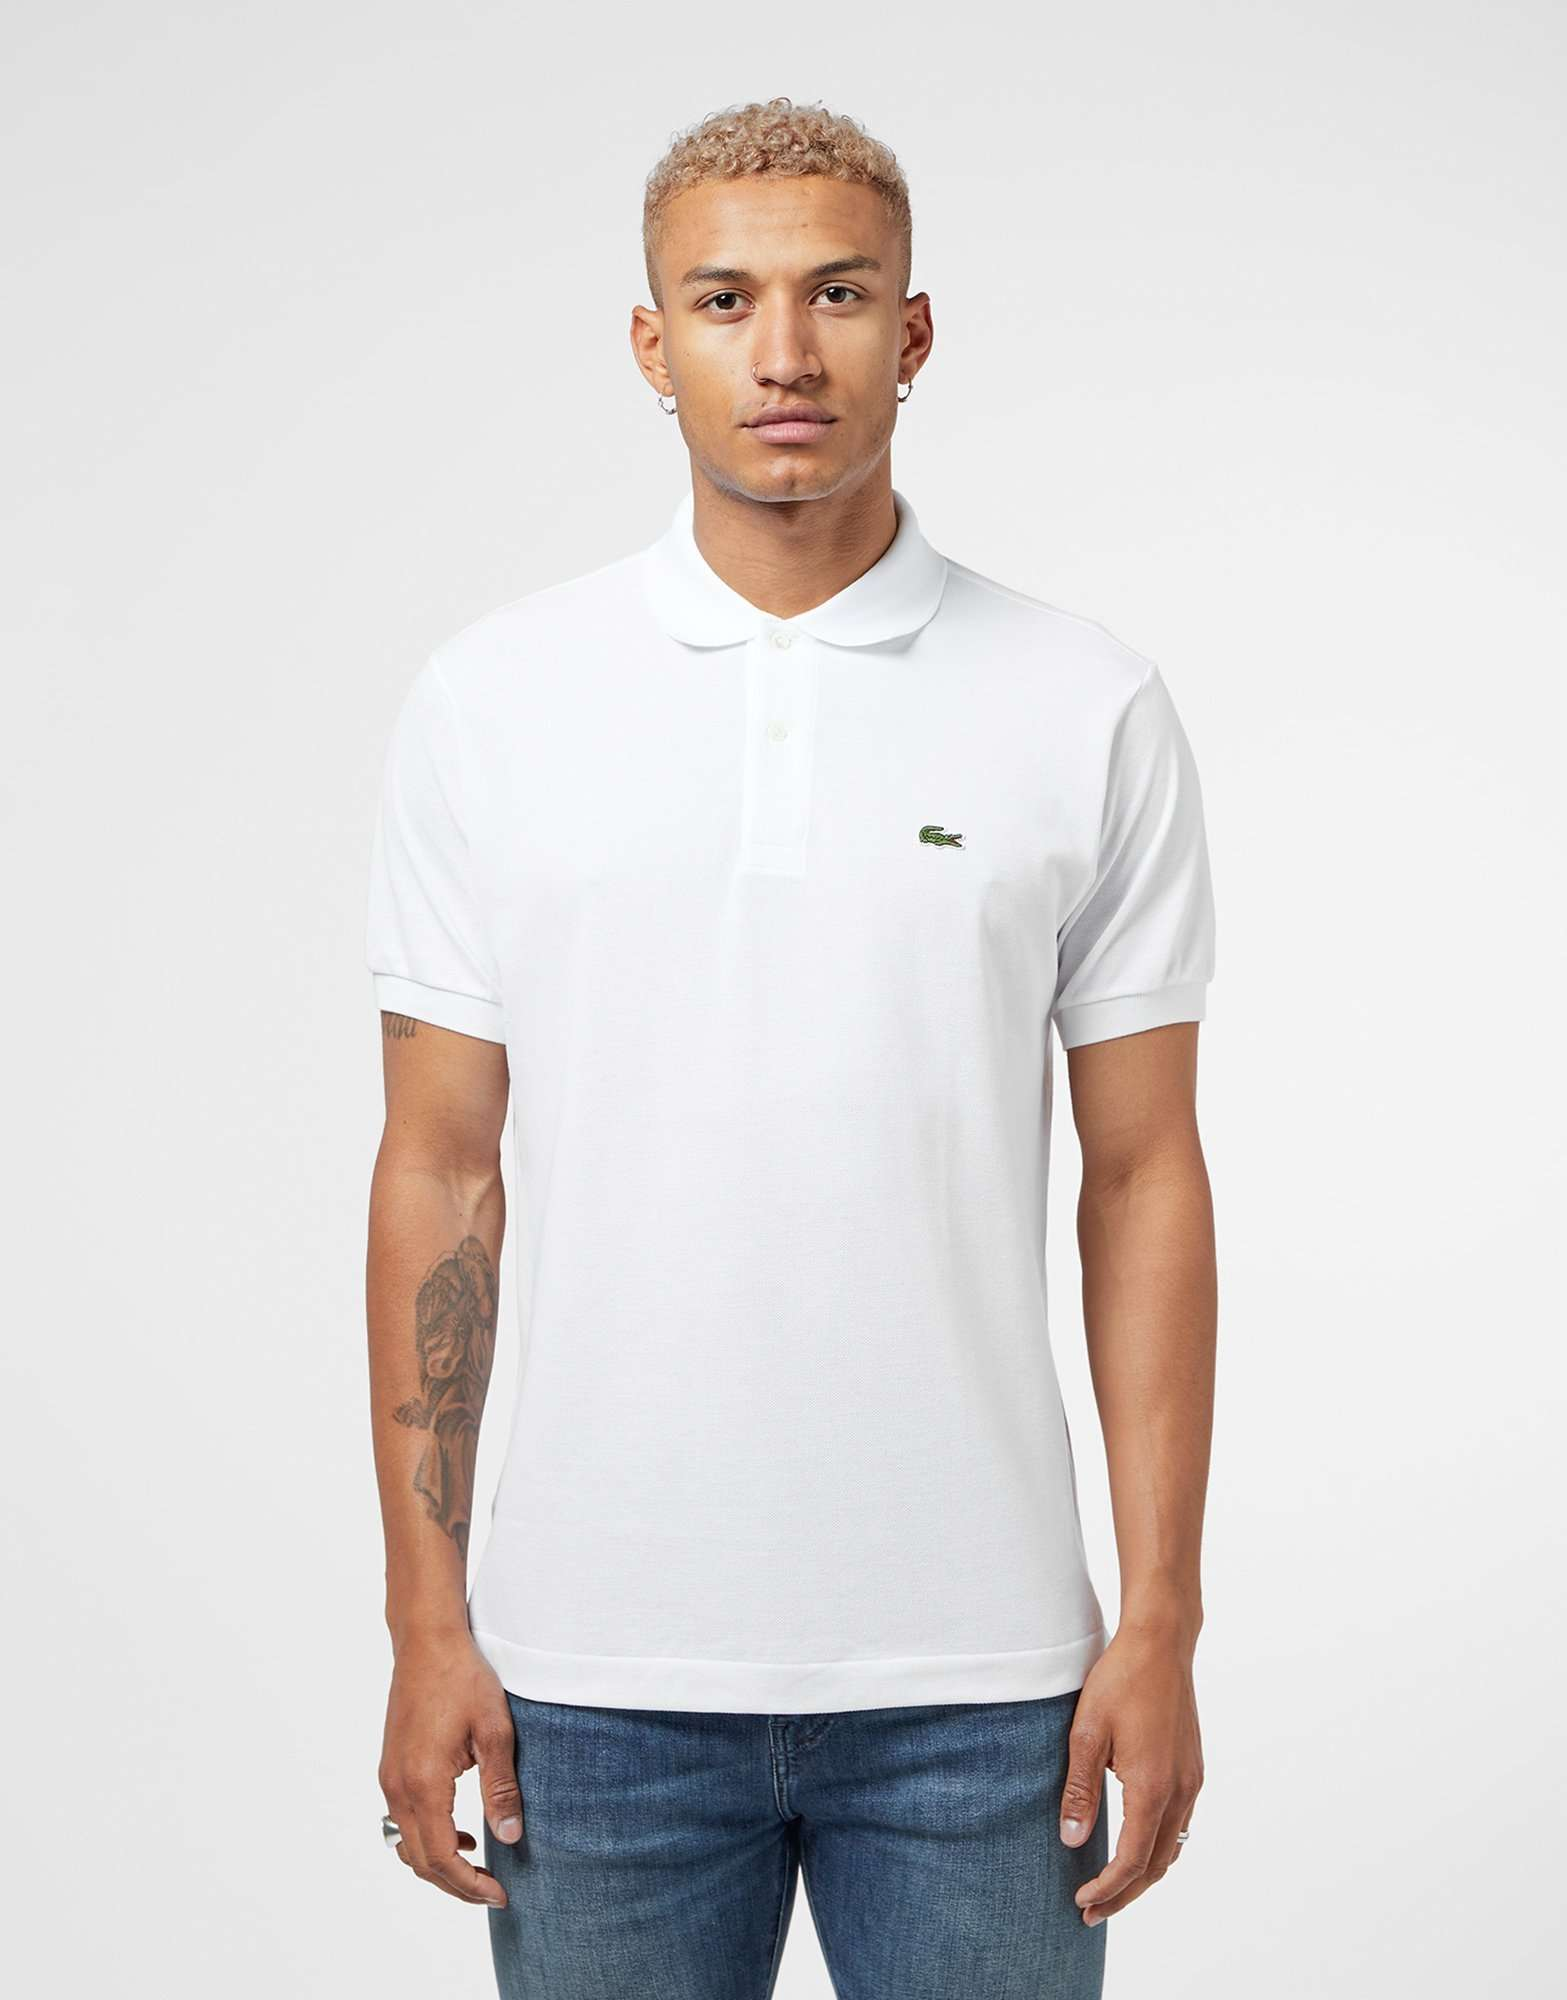 Lacoste l1212 short sleeve polo shirt scotts menswear for Lacoste poloshirt weiay